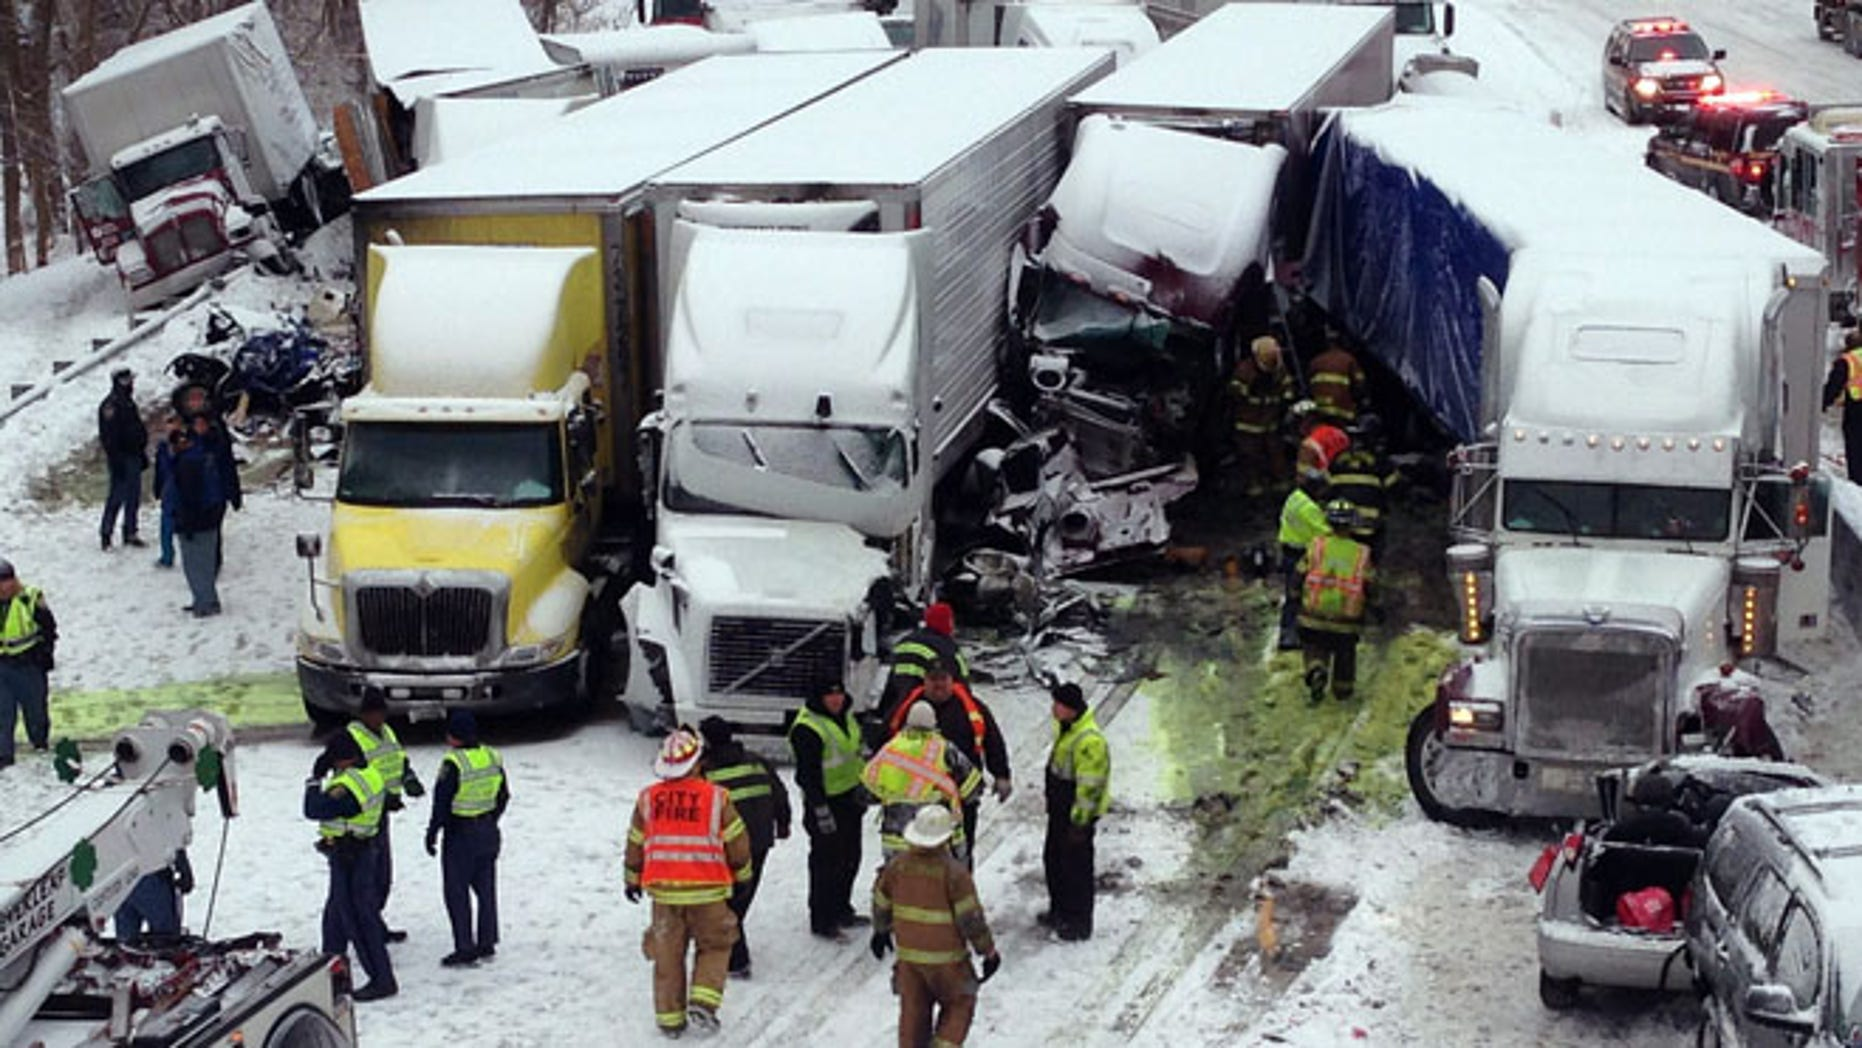 Jan. 23, 2014: In this photo provided by the Indiana State Police, emergency crews work at the scene of a massive pileup involving about 15 semitrailers and about 15 passenger vehicles and pickup trucks along Interstate 94.